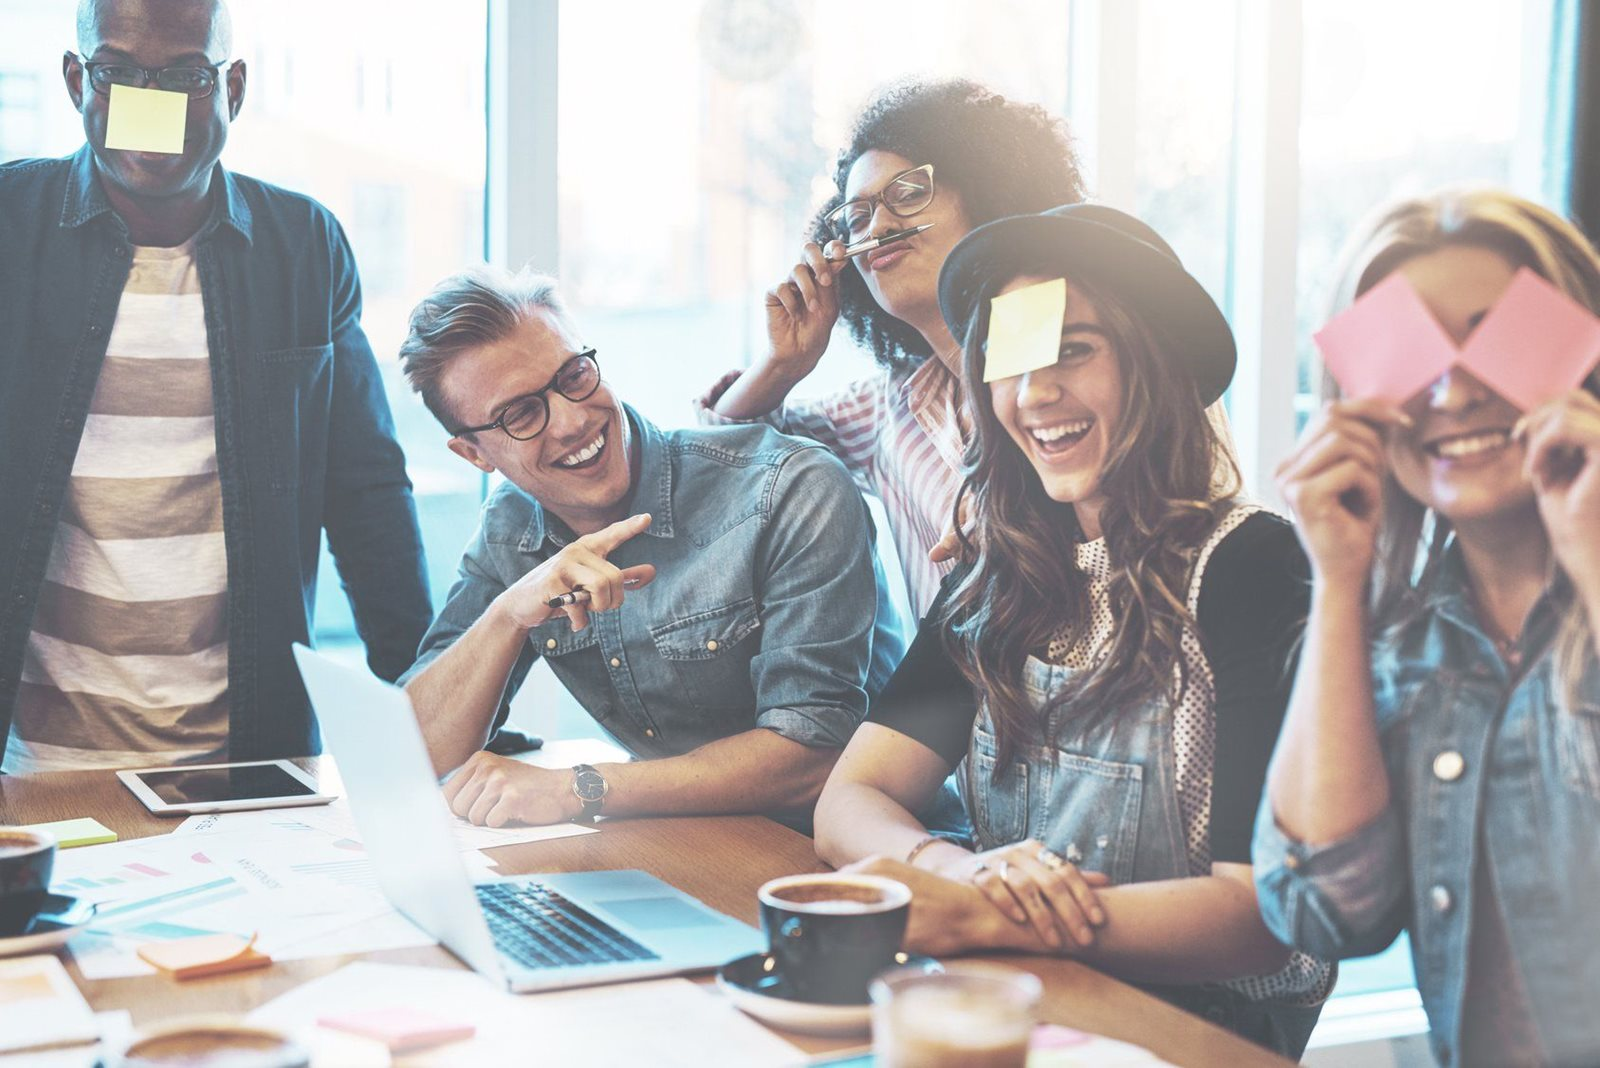 VIEWPOINT: HOW TO USE HUMOR TO INCREASE EMPLOYEE ENGAGEMENT?